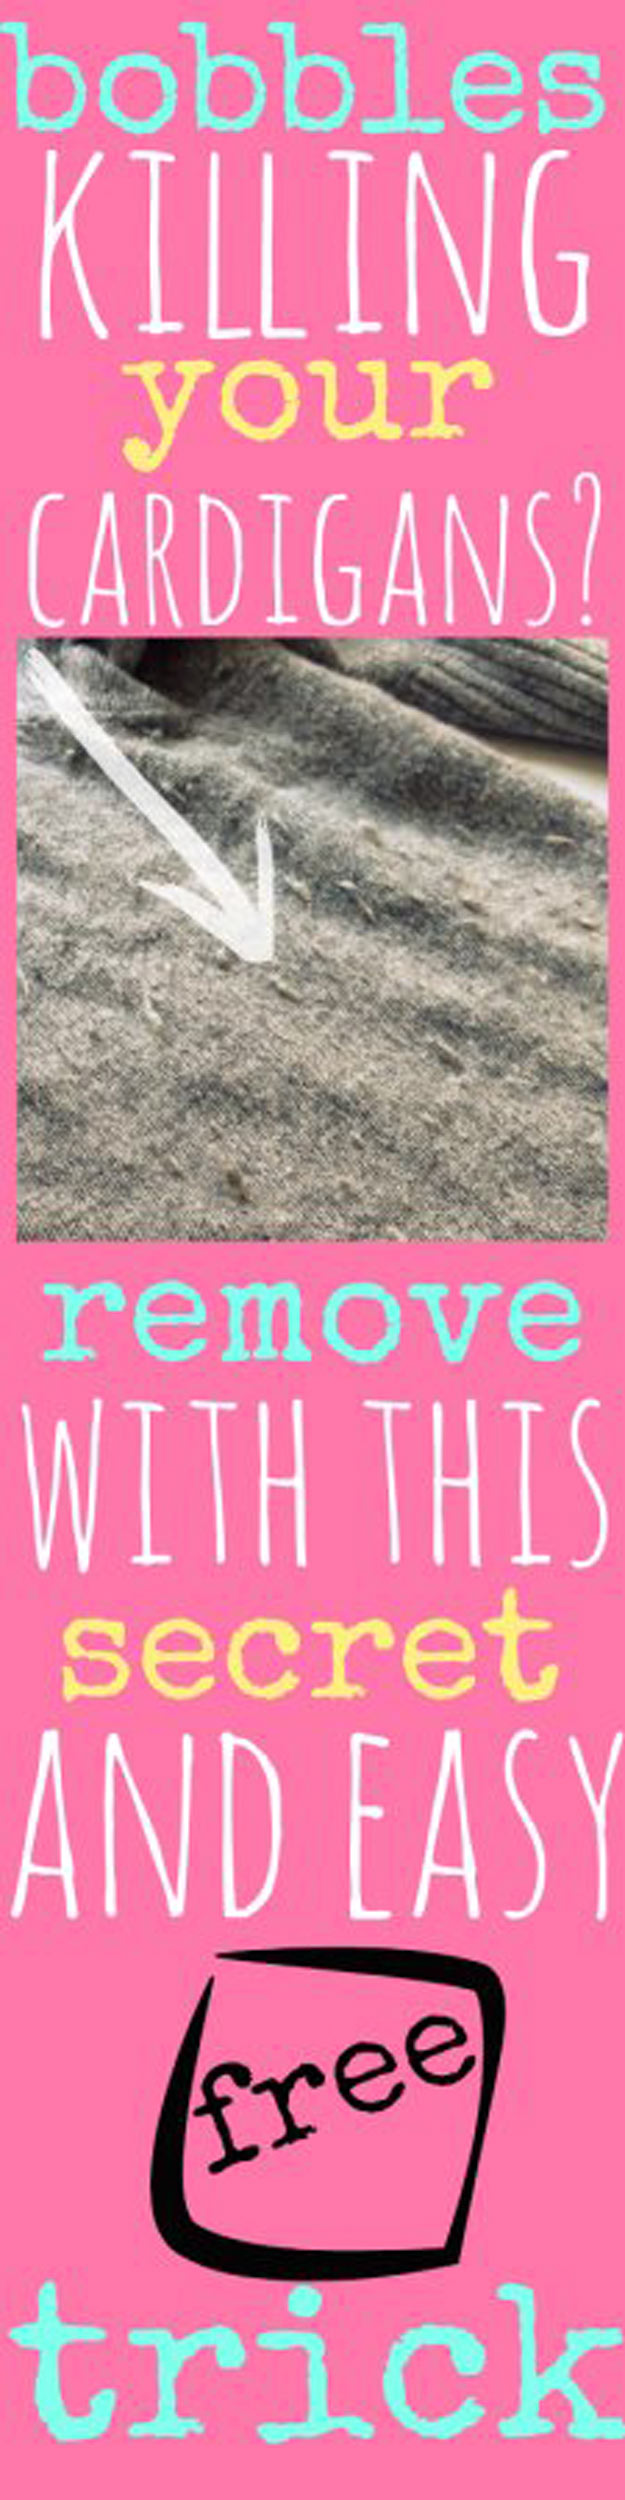 DIY Hacks for Ruined Clothes. Awesome Ideas, Tips and Tricks for Repairing Clothes and Removing Stains in Clothing   How to Remove Bobbles & Pilling from Clothes